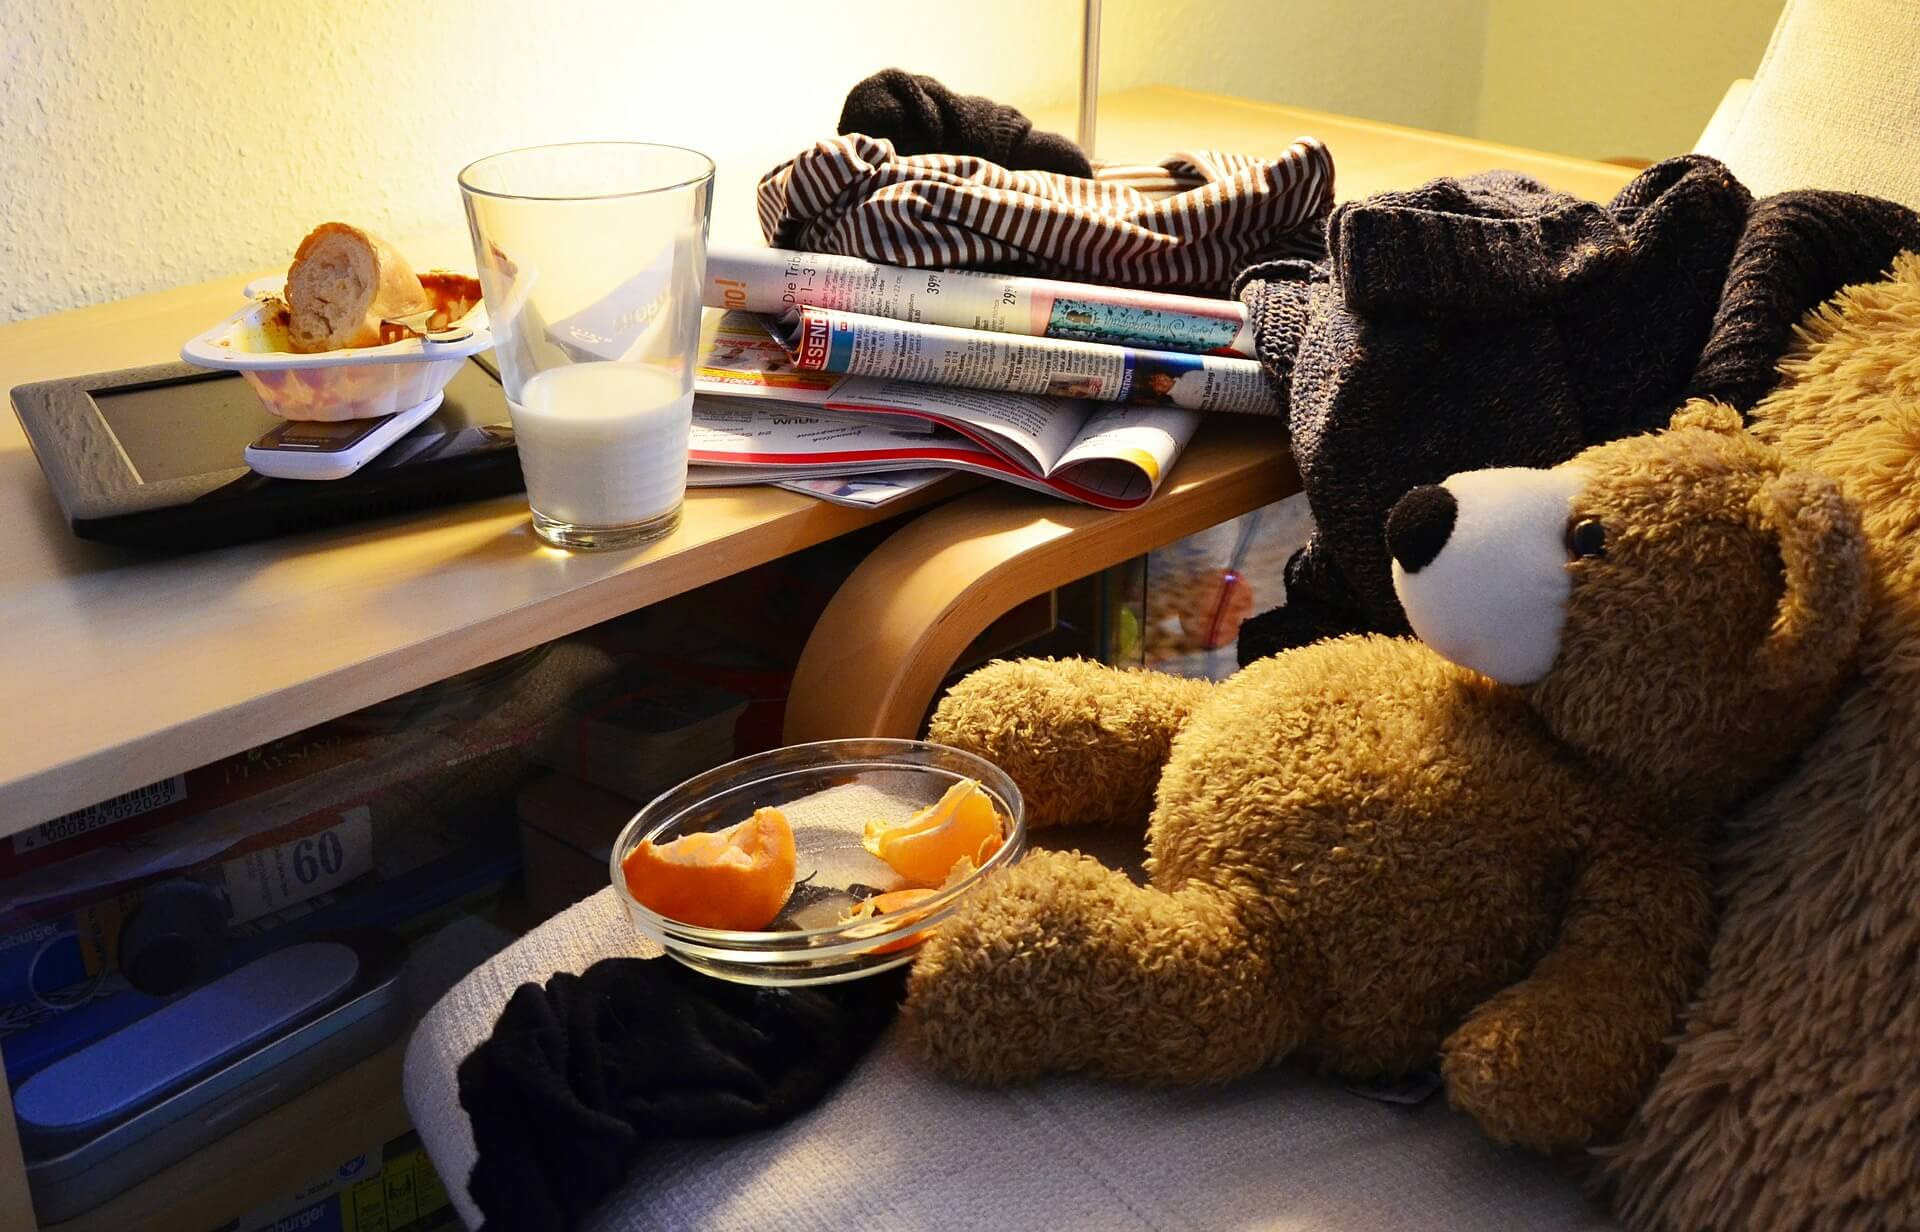 how-does-household-disorder-affect-your-quality-of-life